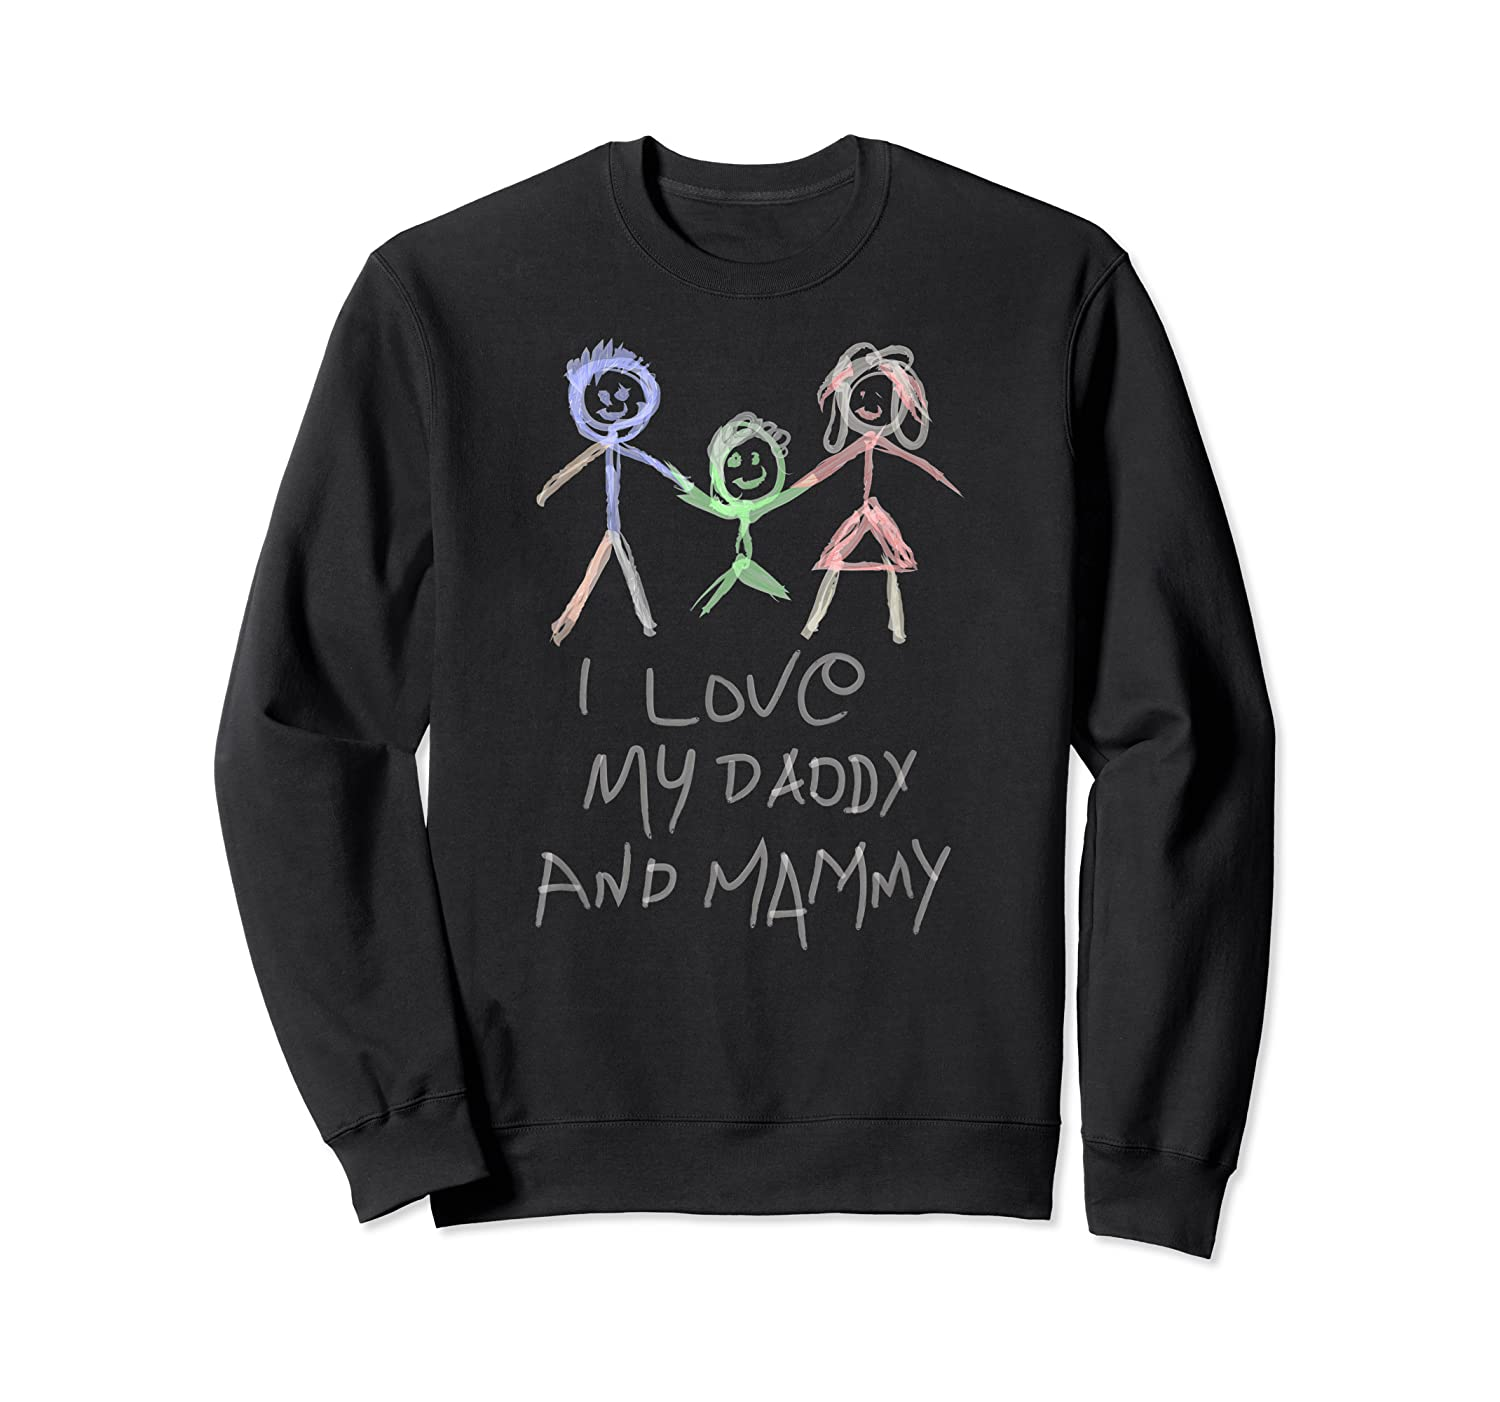 Happy Parents' Day Drawing Funny Shirts Crewneck Sweater